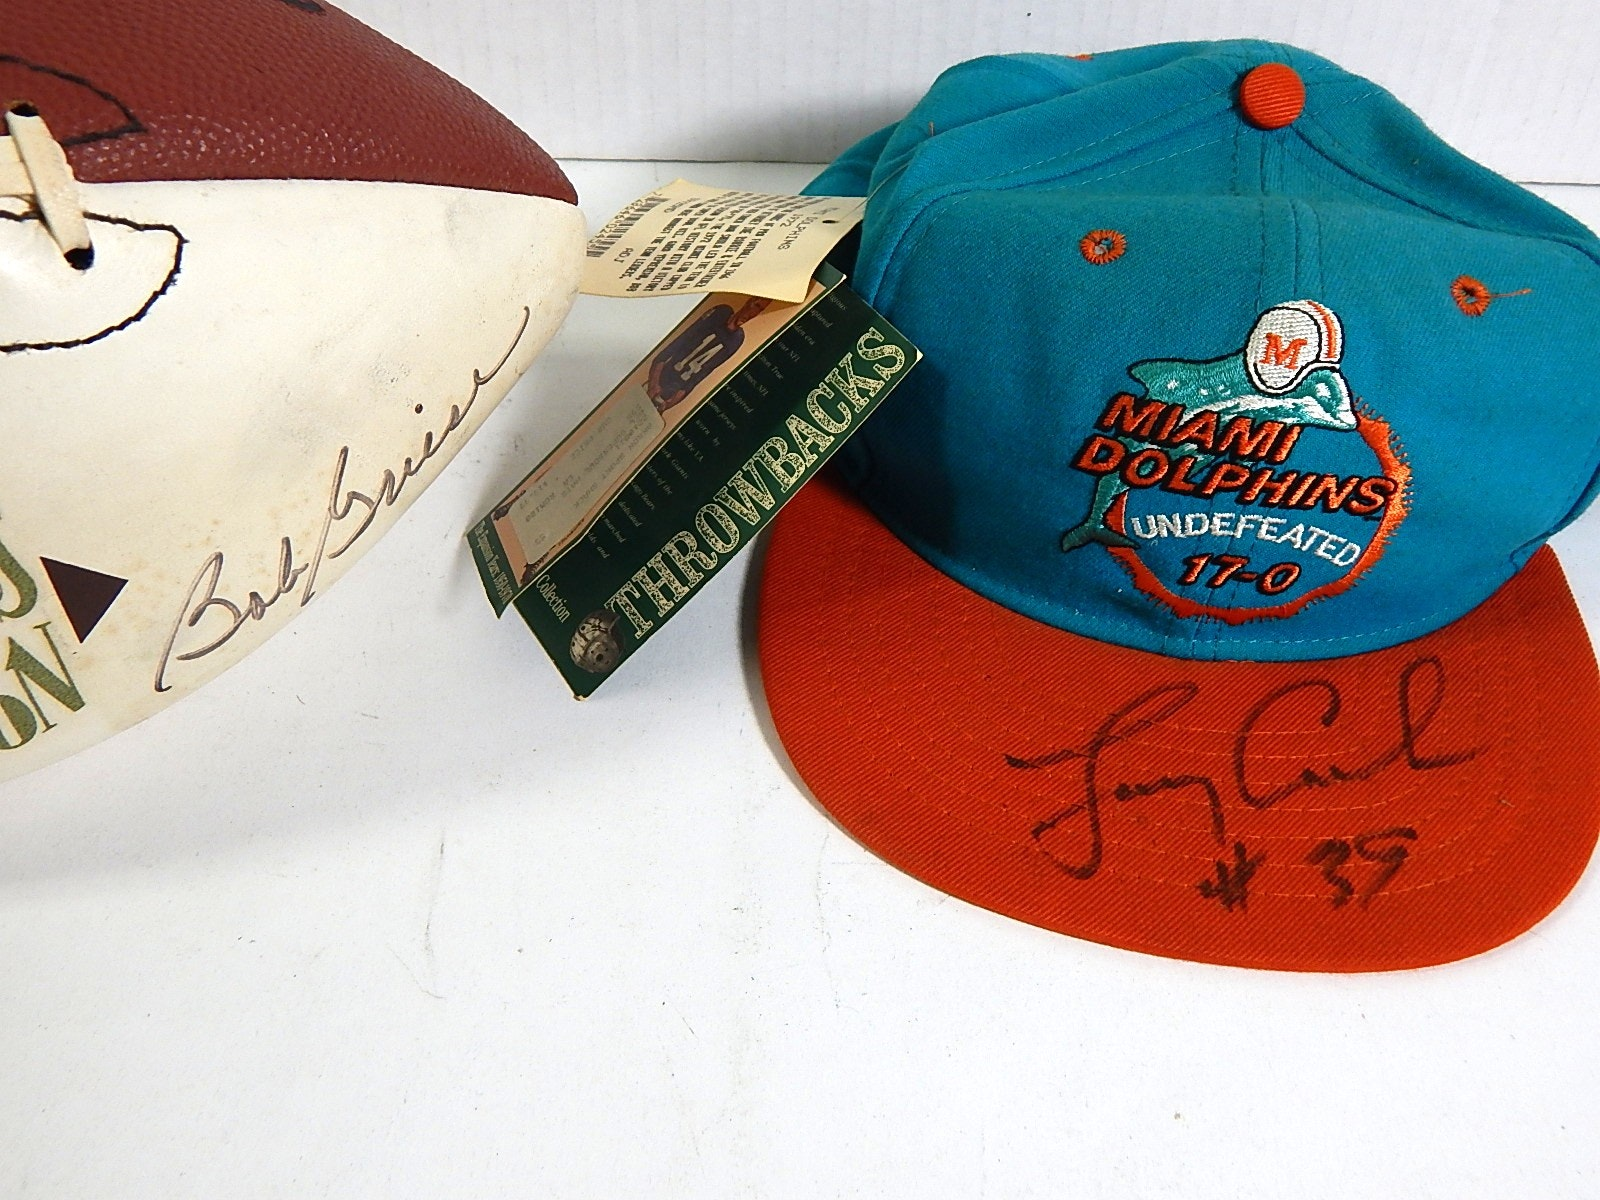 NFL Bob Griese Autographed Football and Larry Csonka Autographed Cap